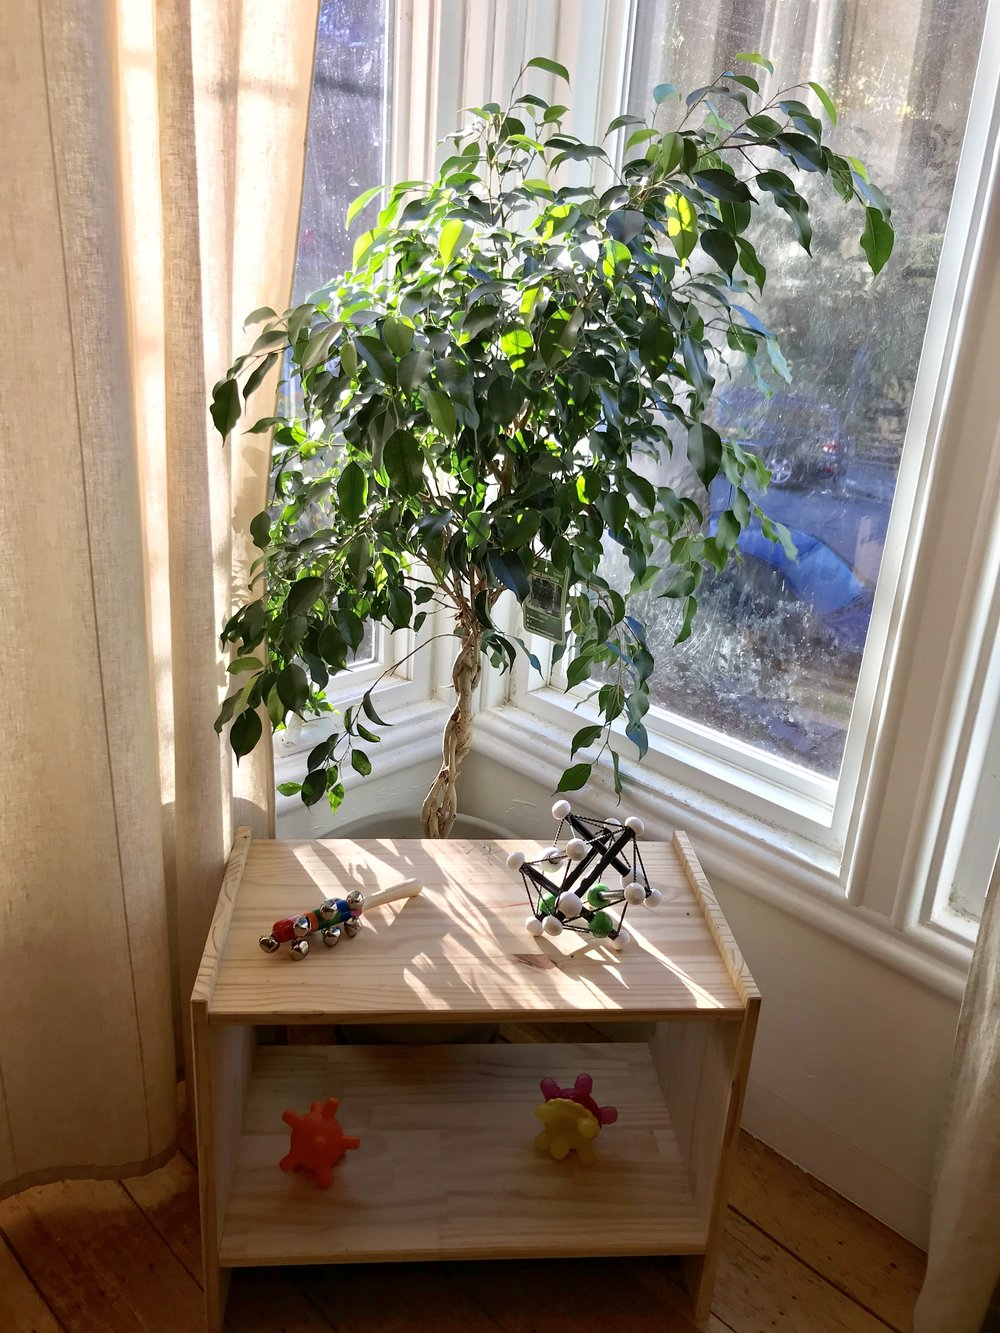 This can even work for protecting house plants!